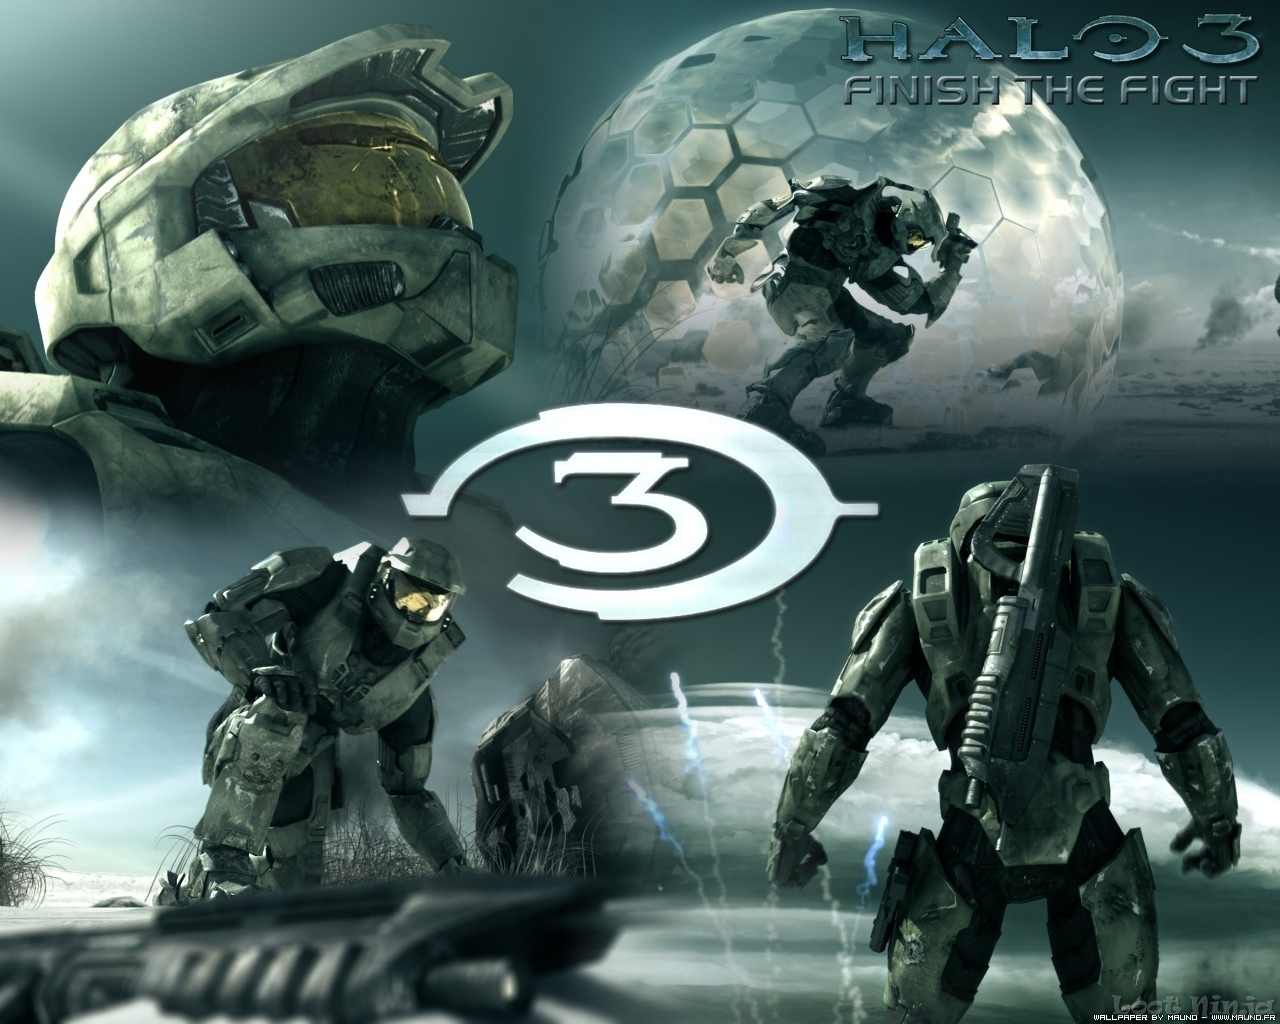 halo 3 images halo 3 hd wallpaper and background photos (4745190)